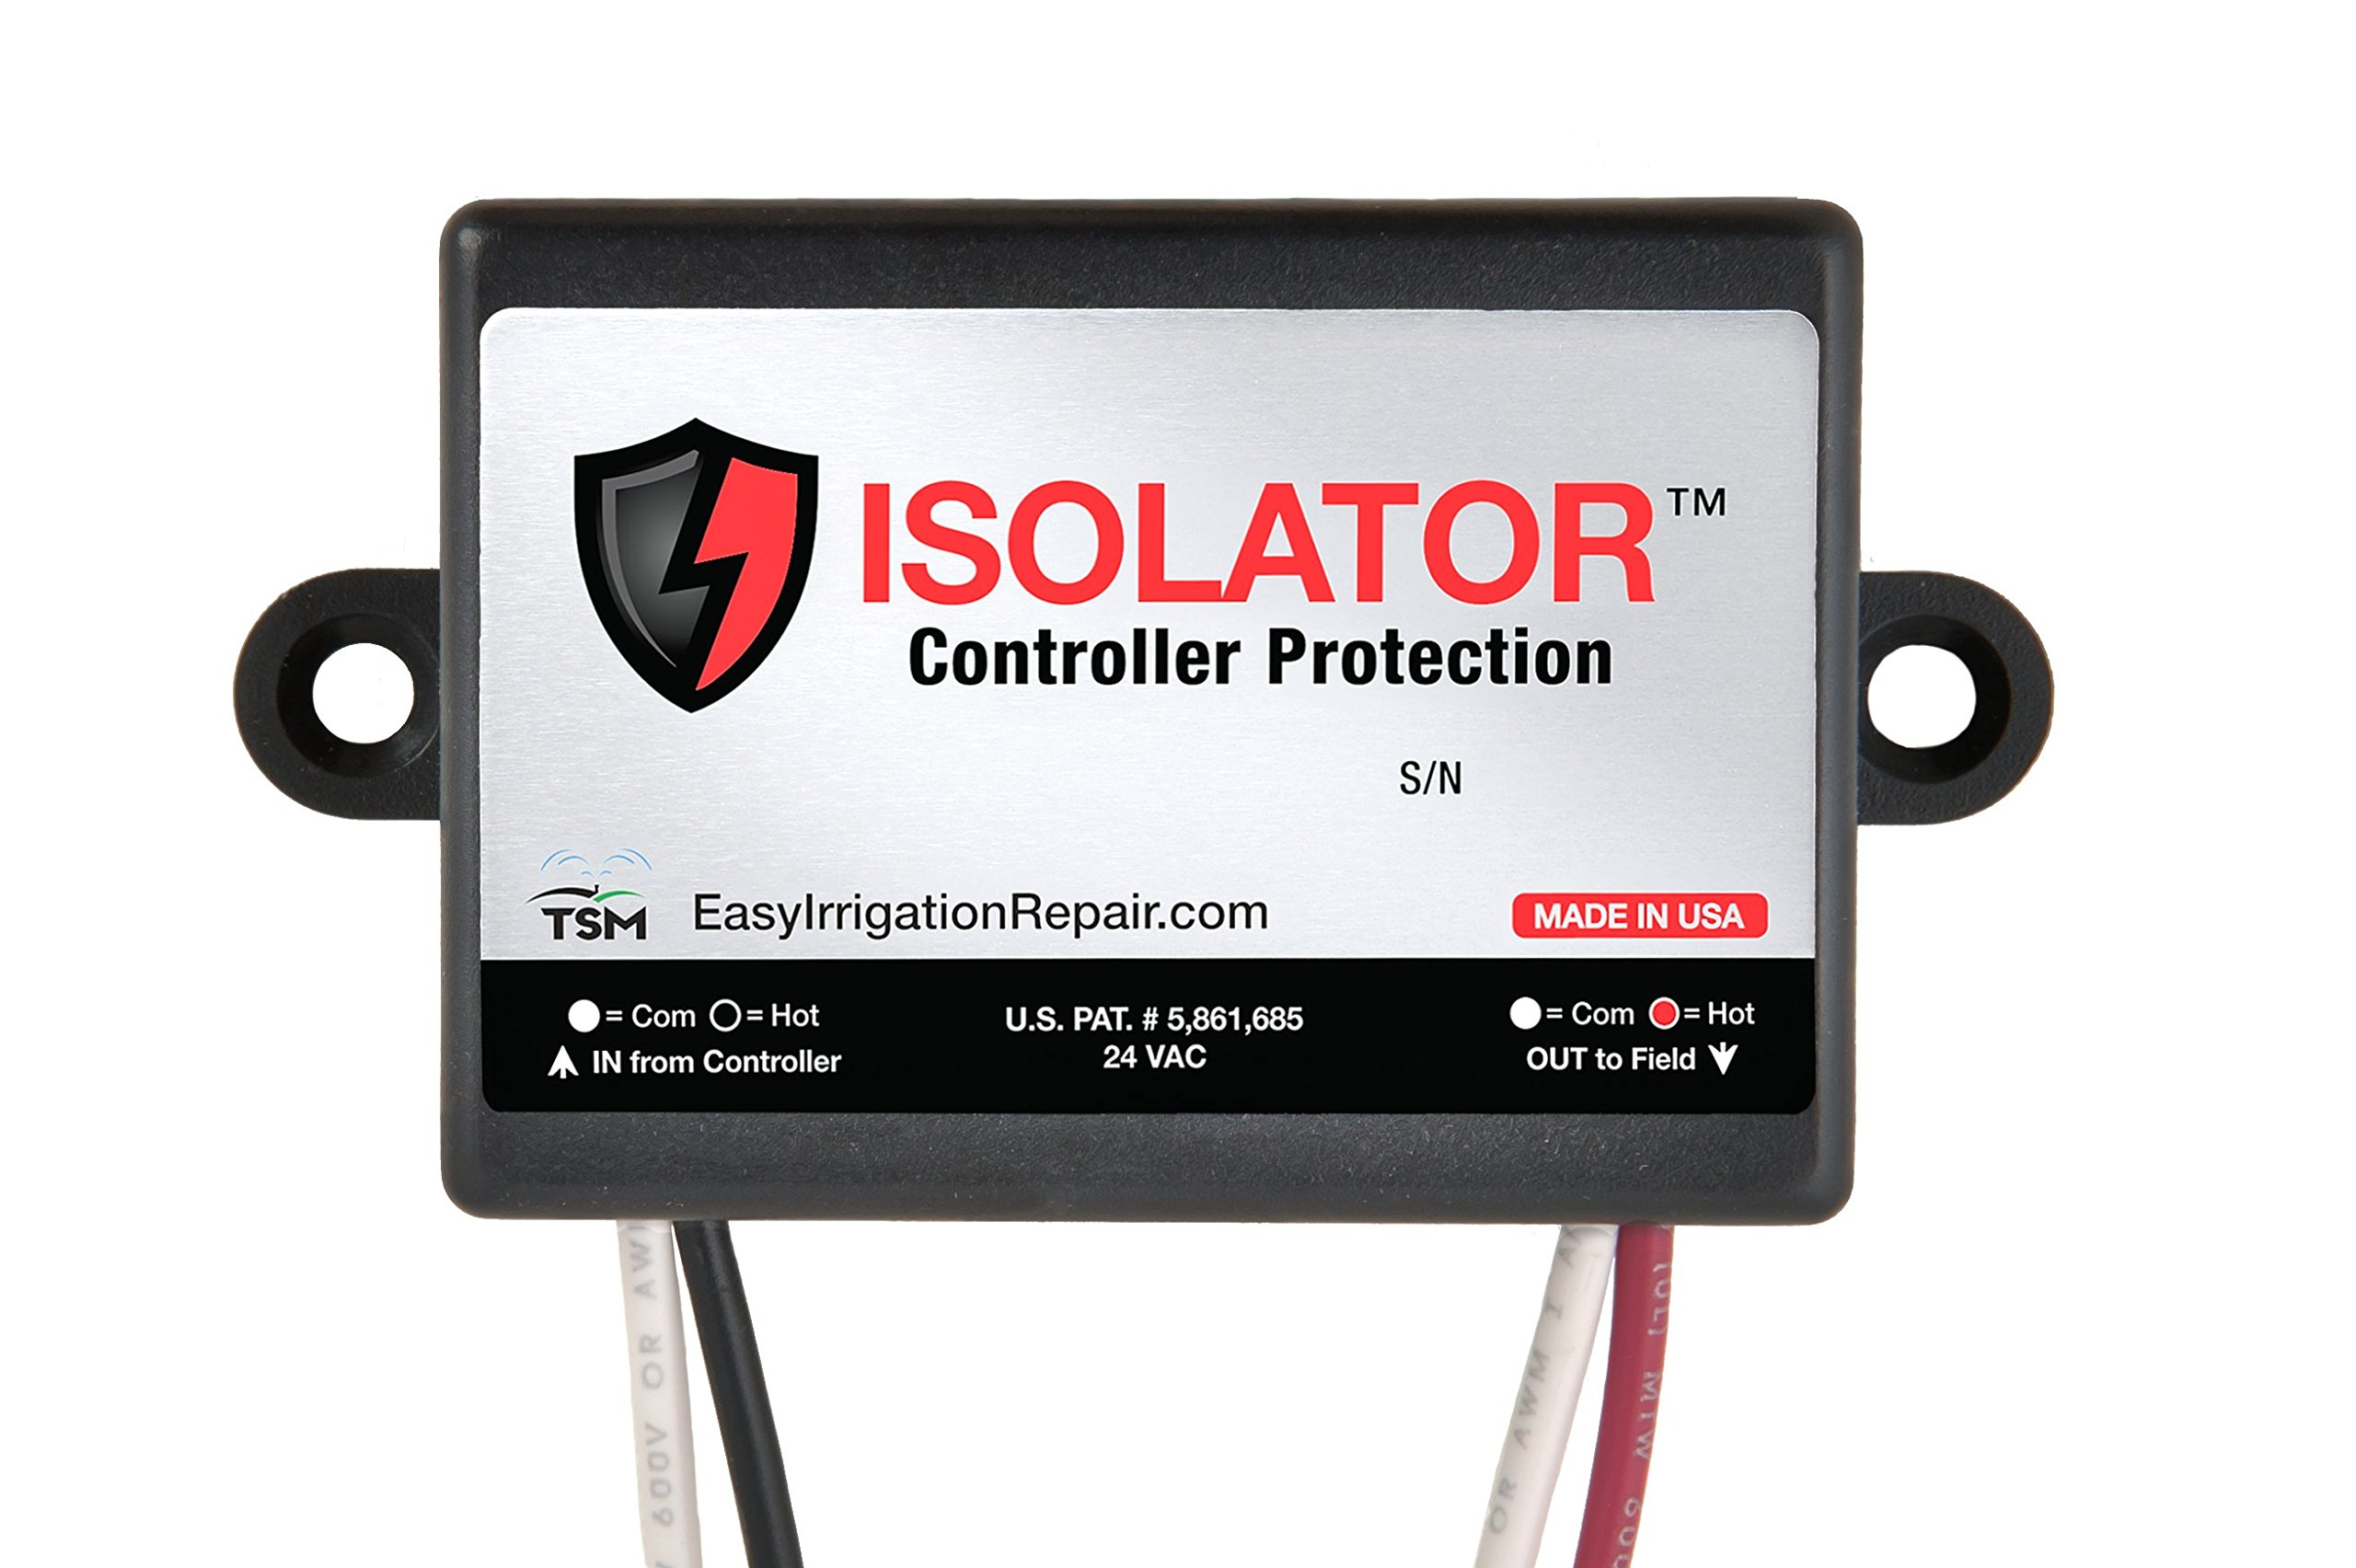 ISOLATOR - Irrigation Controller Protection / Protect Multi-controller Systems From Interconnection Issues